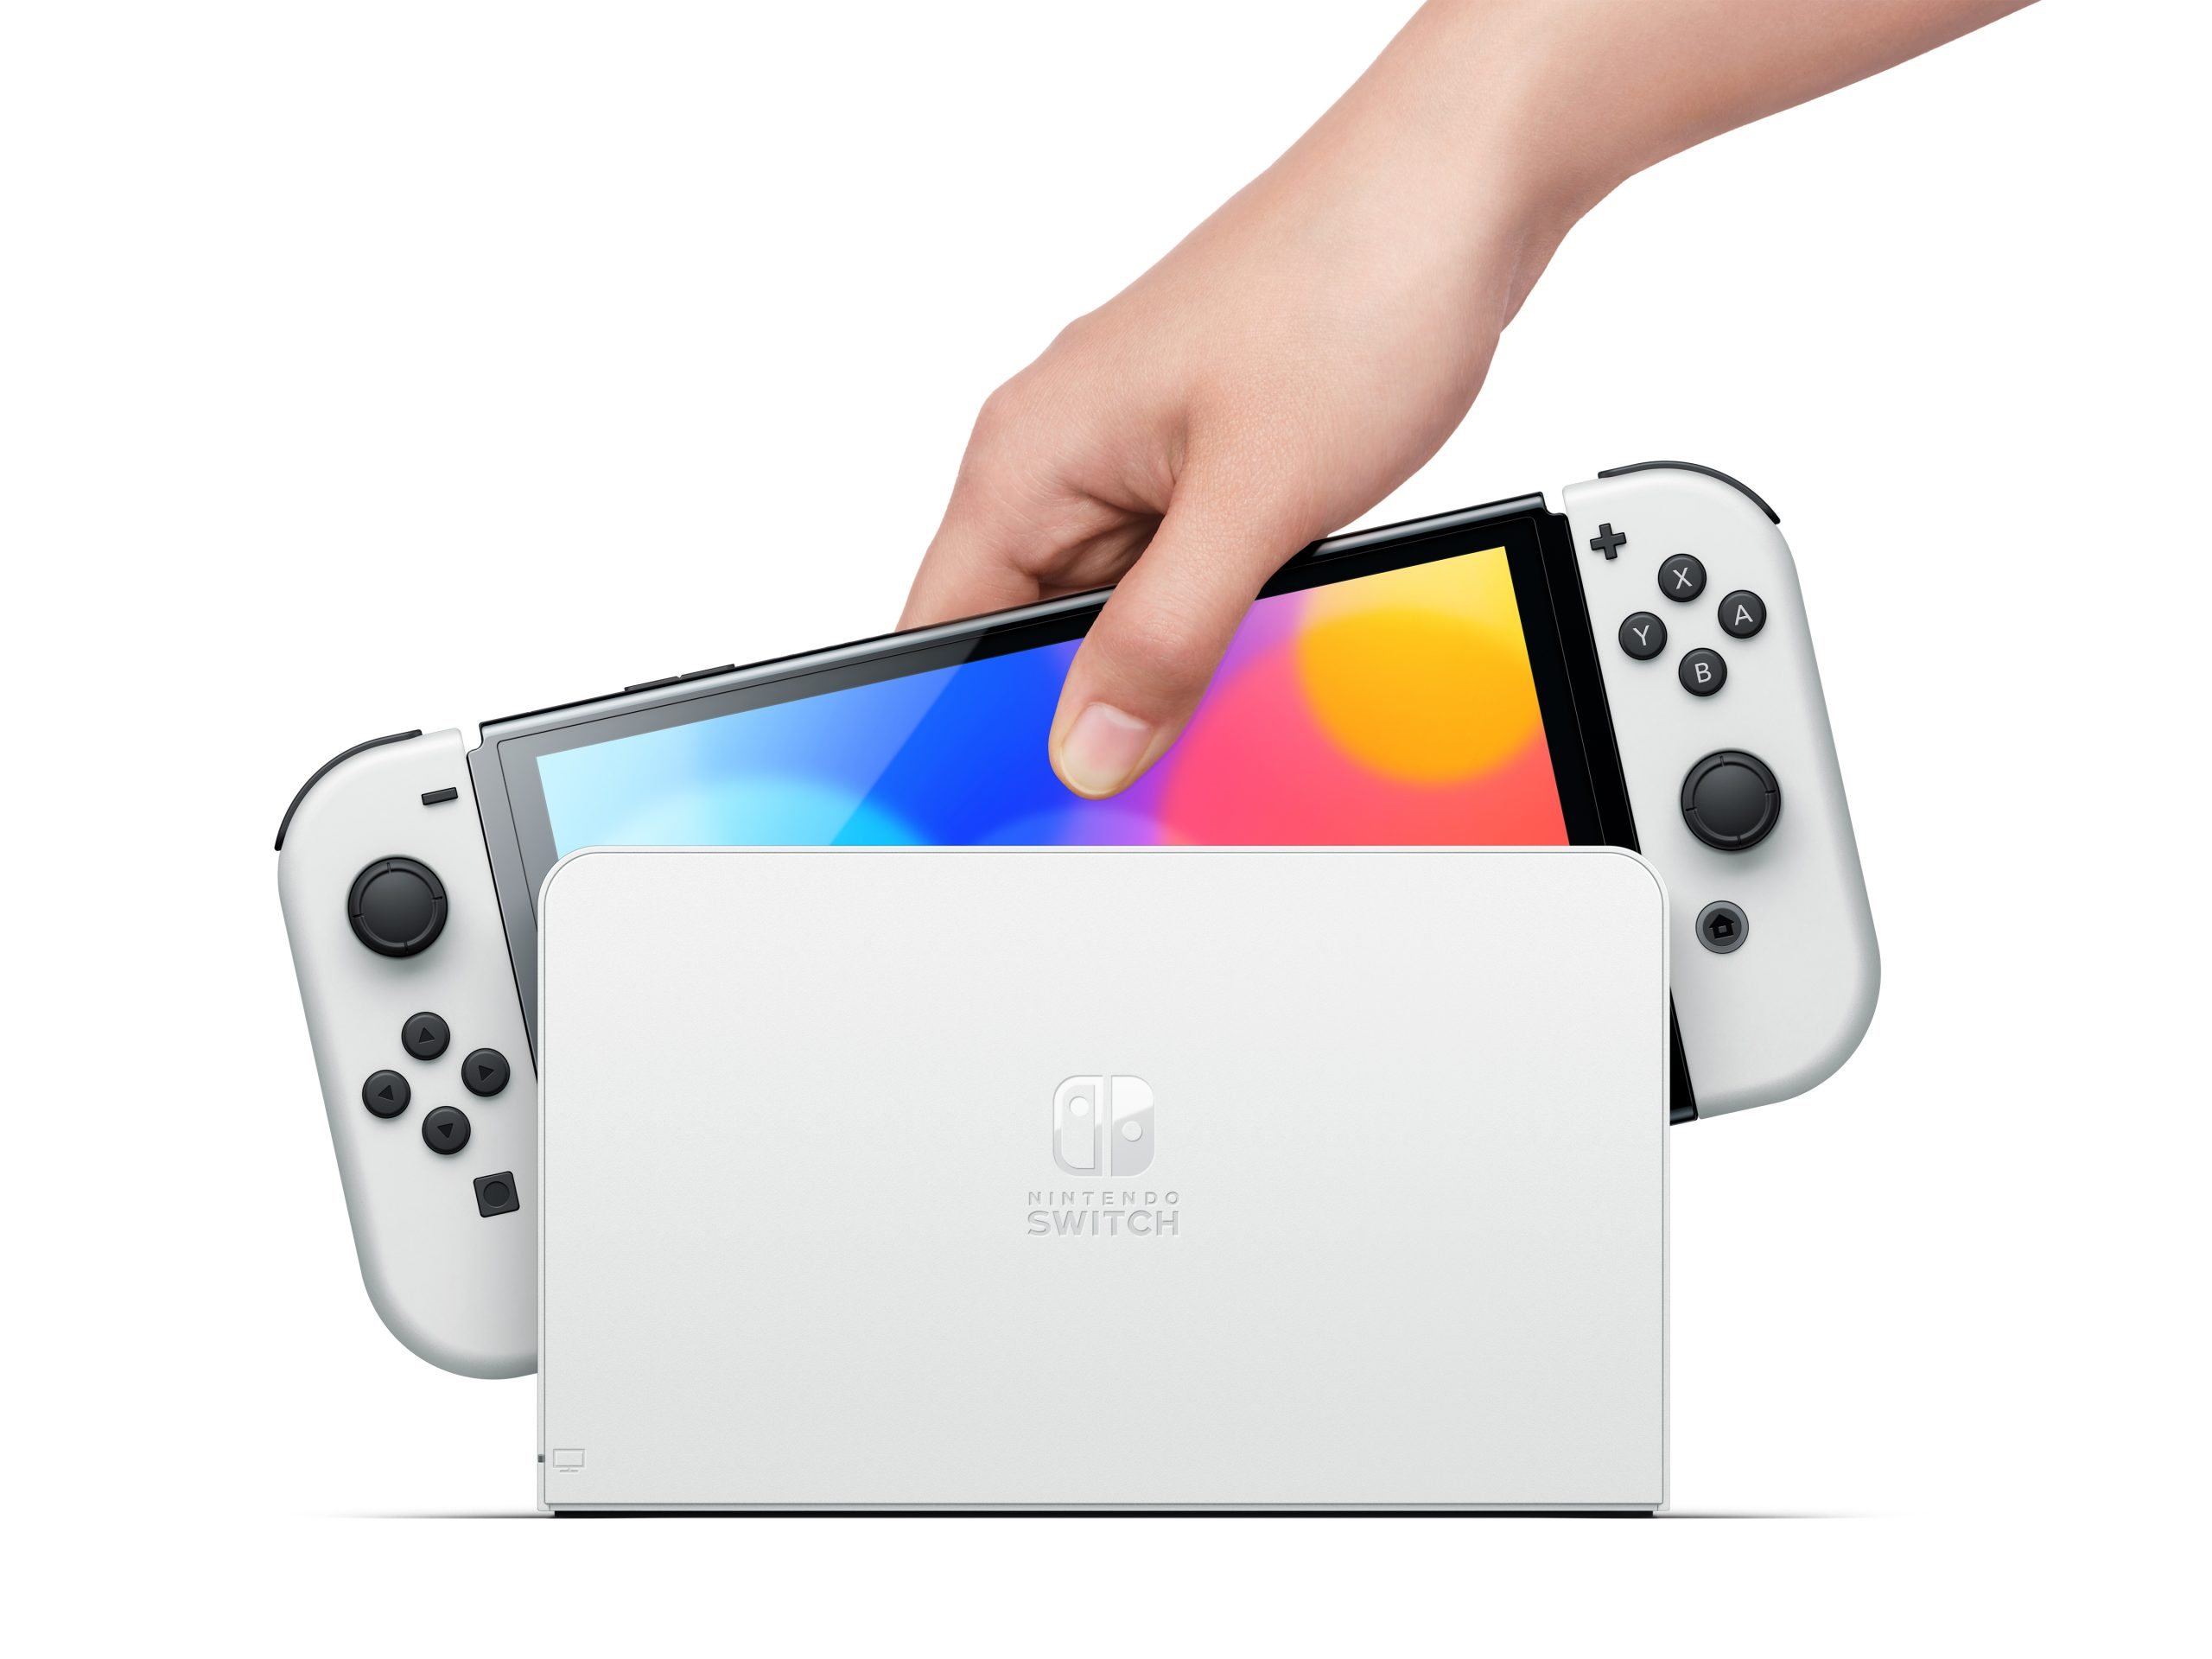 Switch OLED Model featured